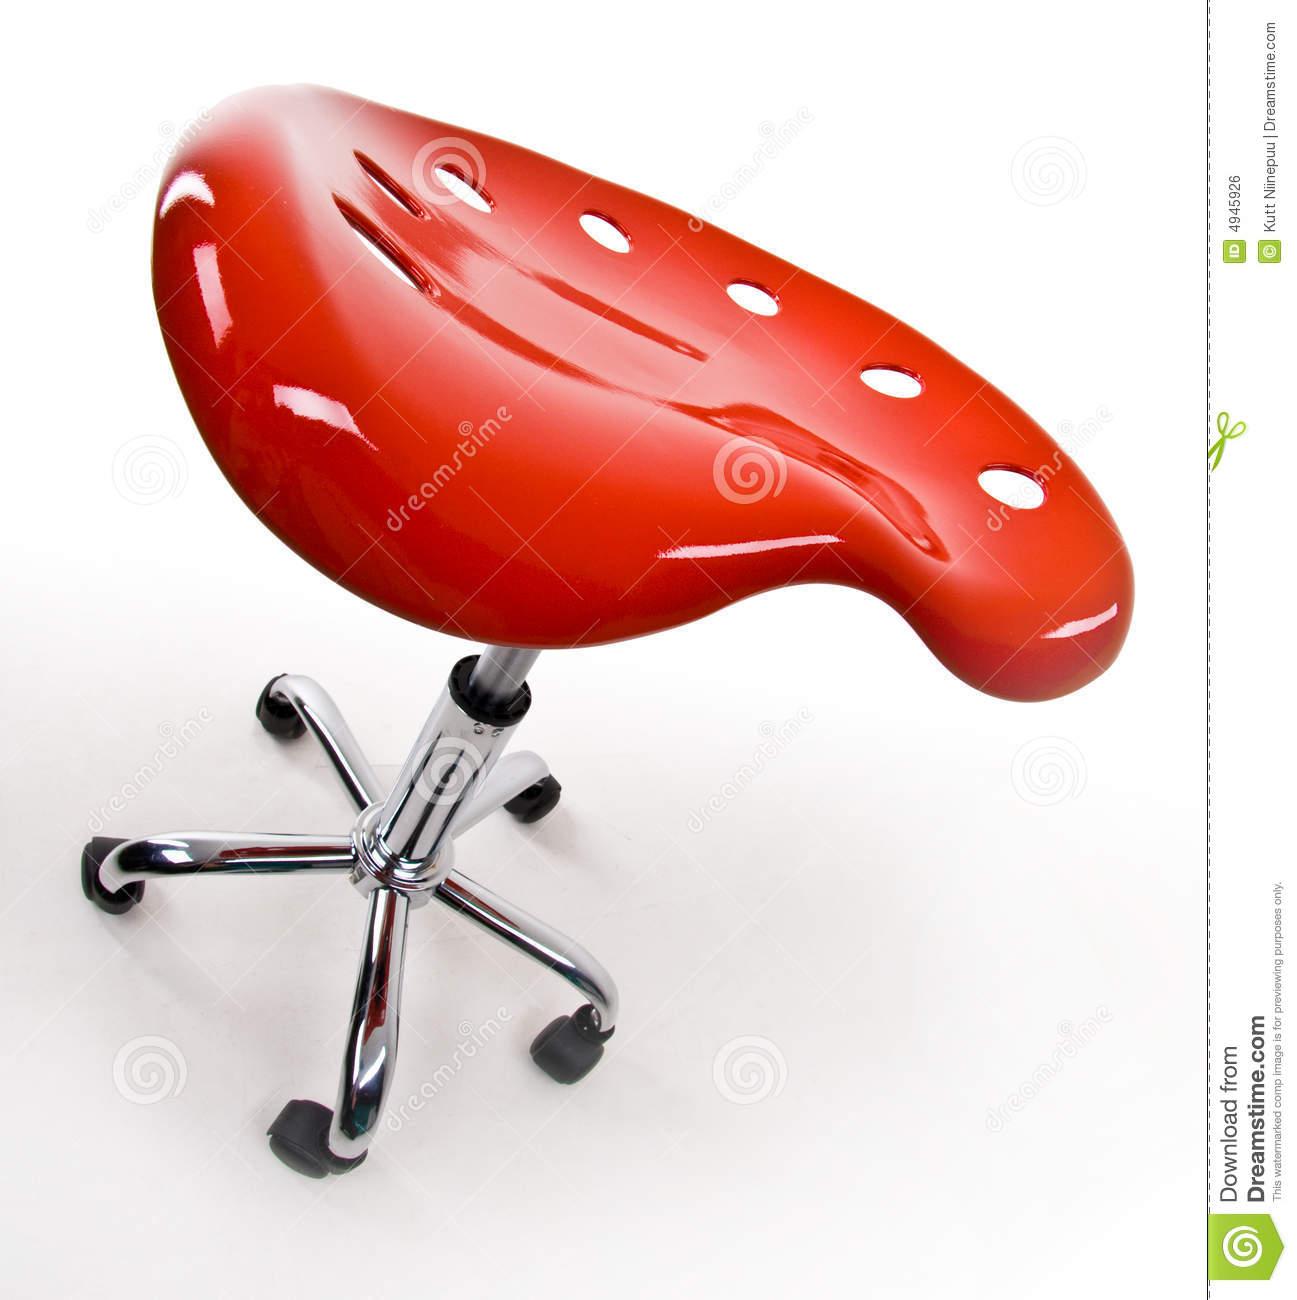 Funky office stool Royalty Free Stock Image  sc 1 st  Dreamstime.com & Red Stool With Wheels Royalty Free Stock Photography - Image: 4945907 islam-shia.org